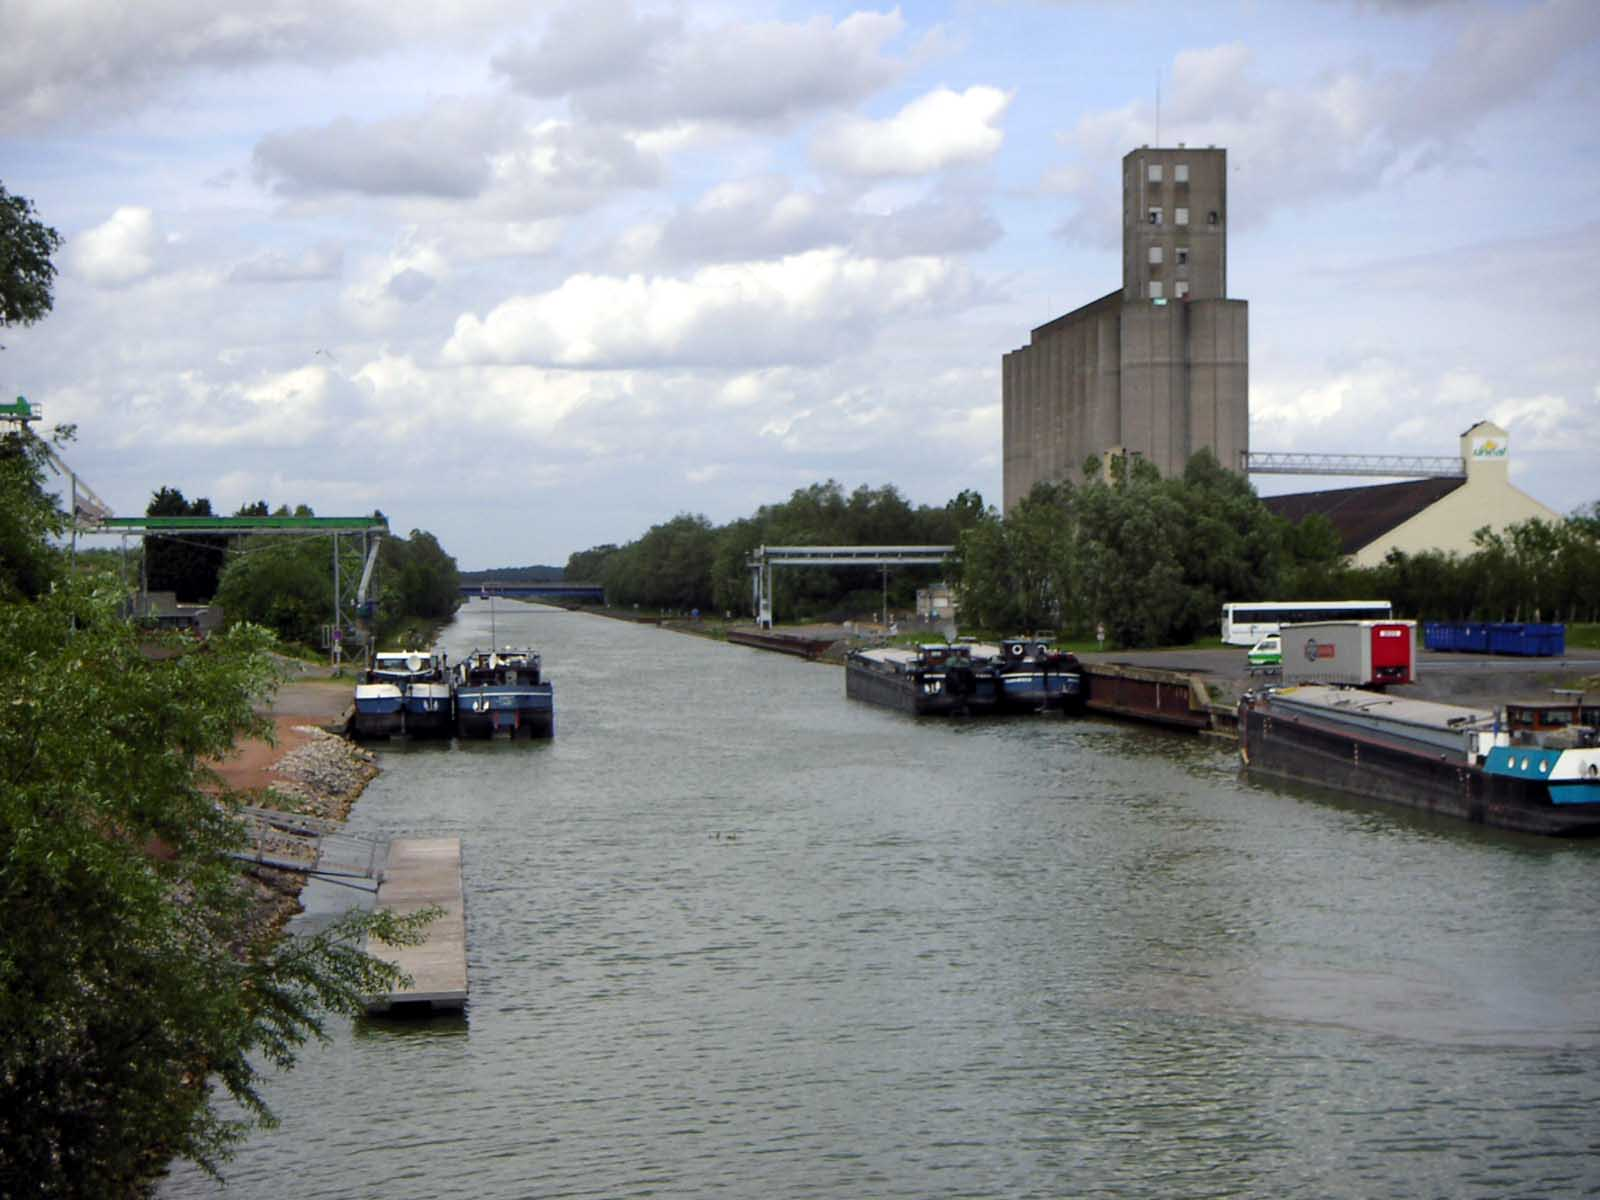 The Canal du Nord